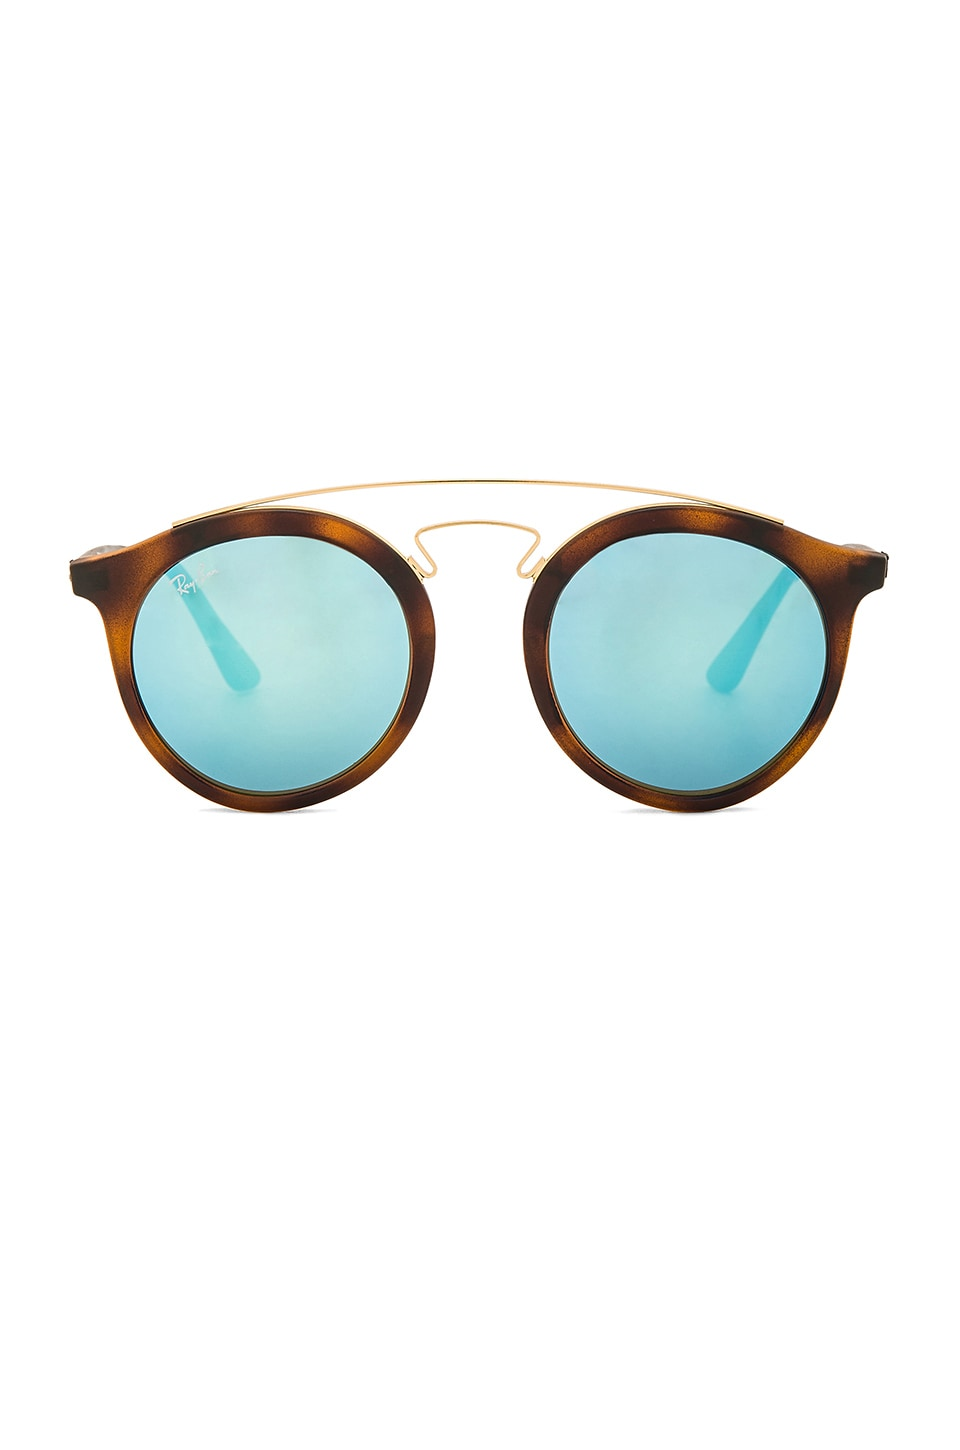 8e2f090b65 Ray-Ban Gatsby I in Tortoise   Blue Mirror